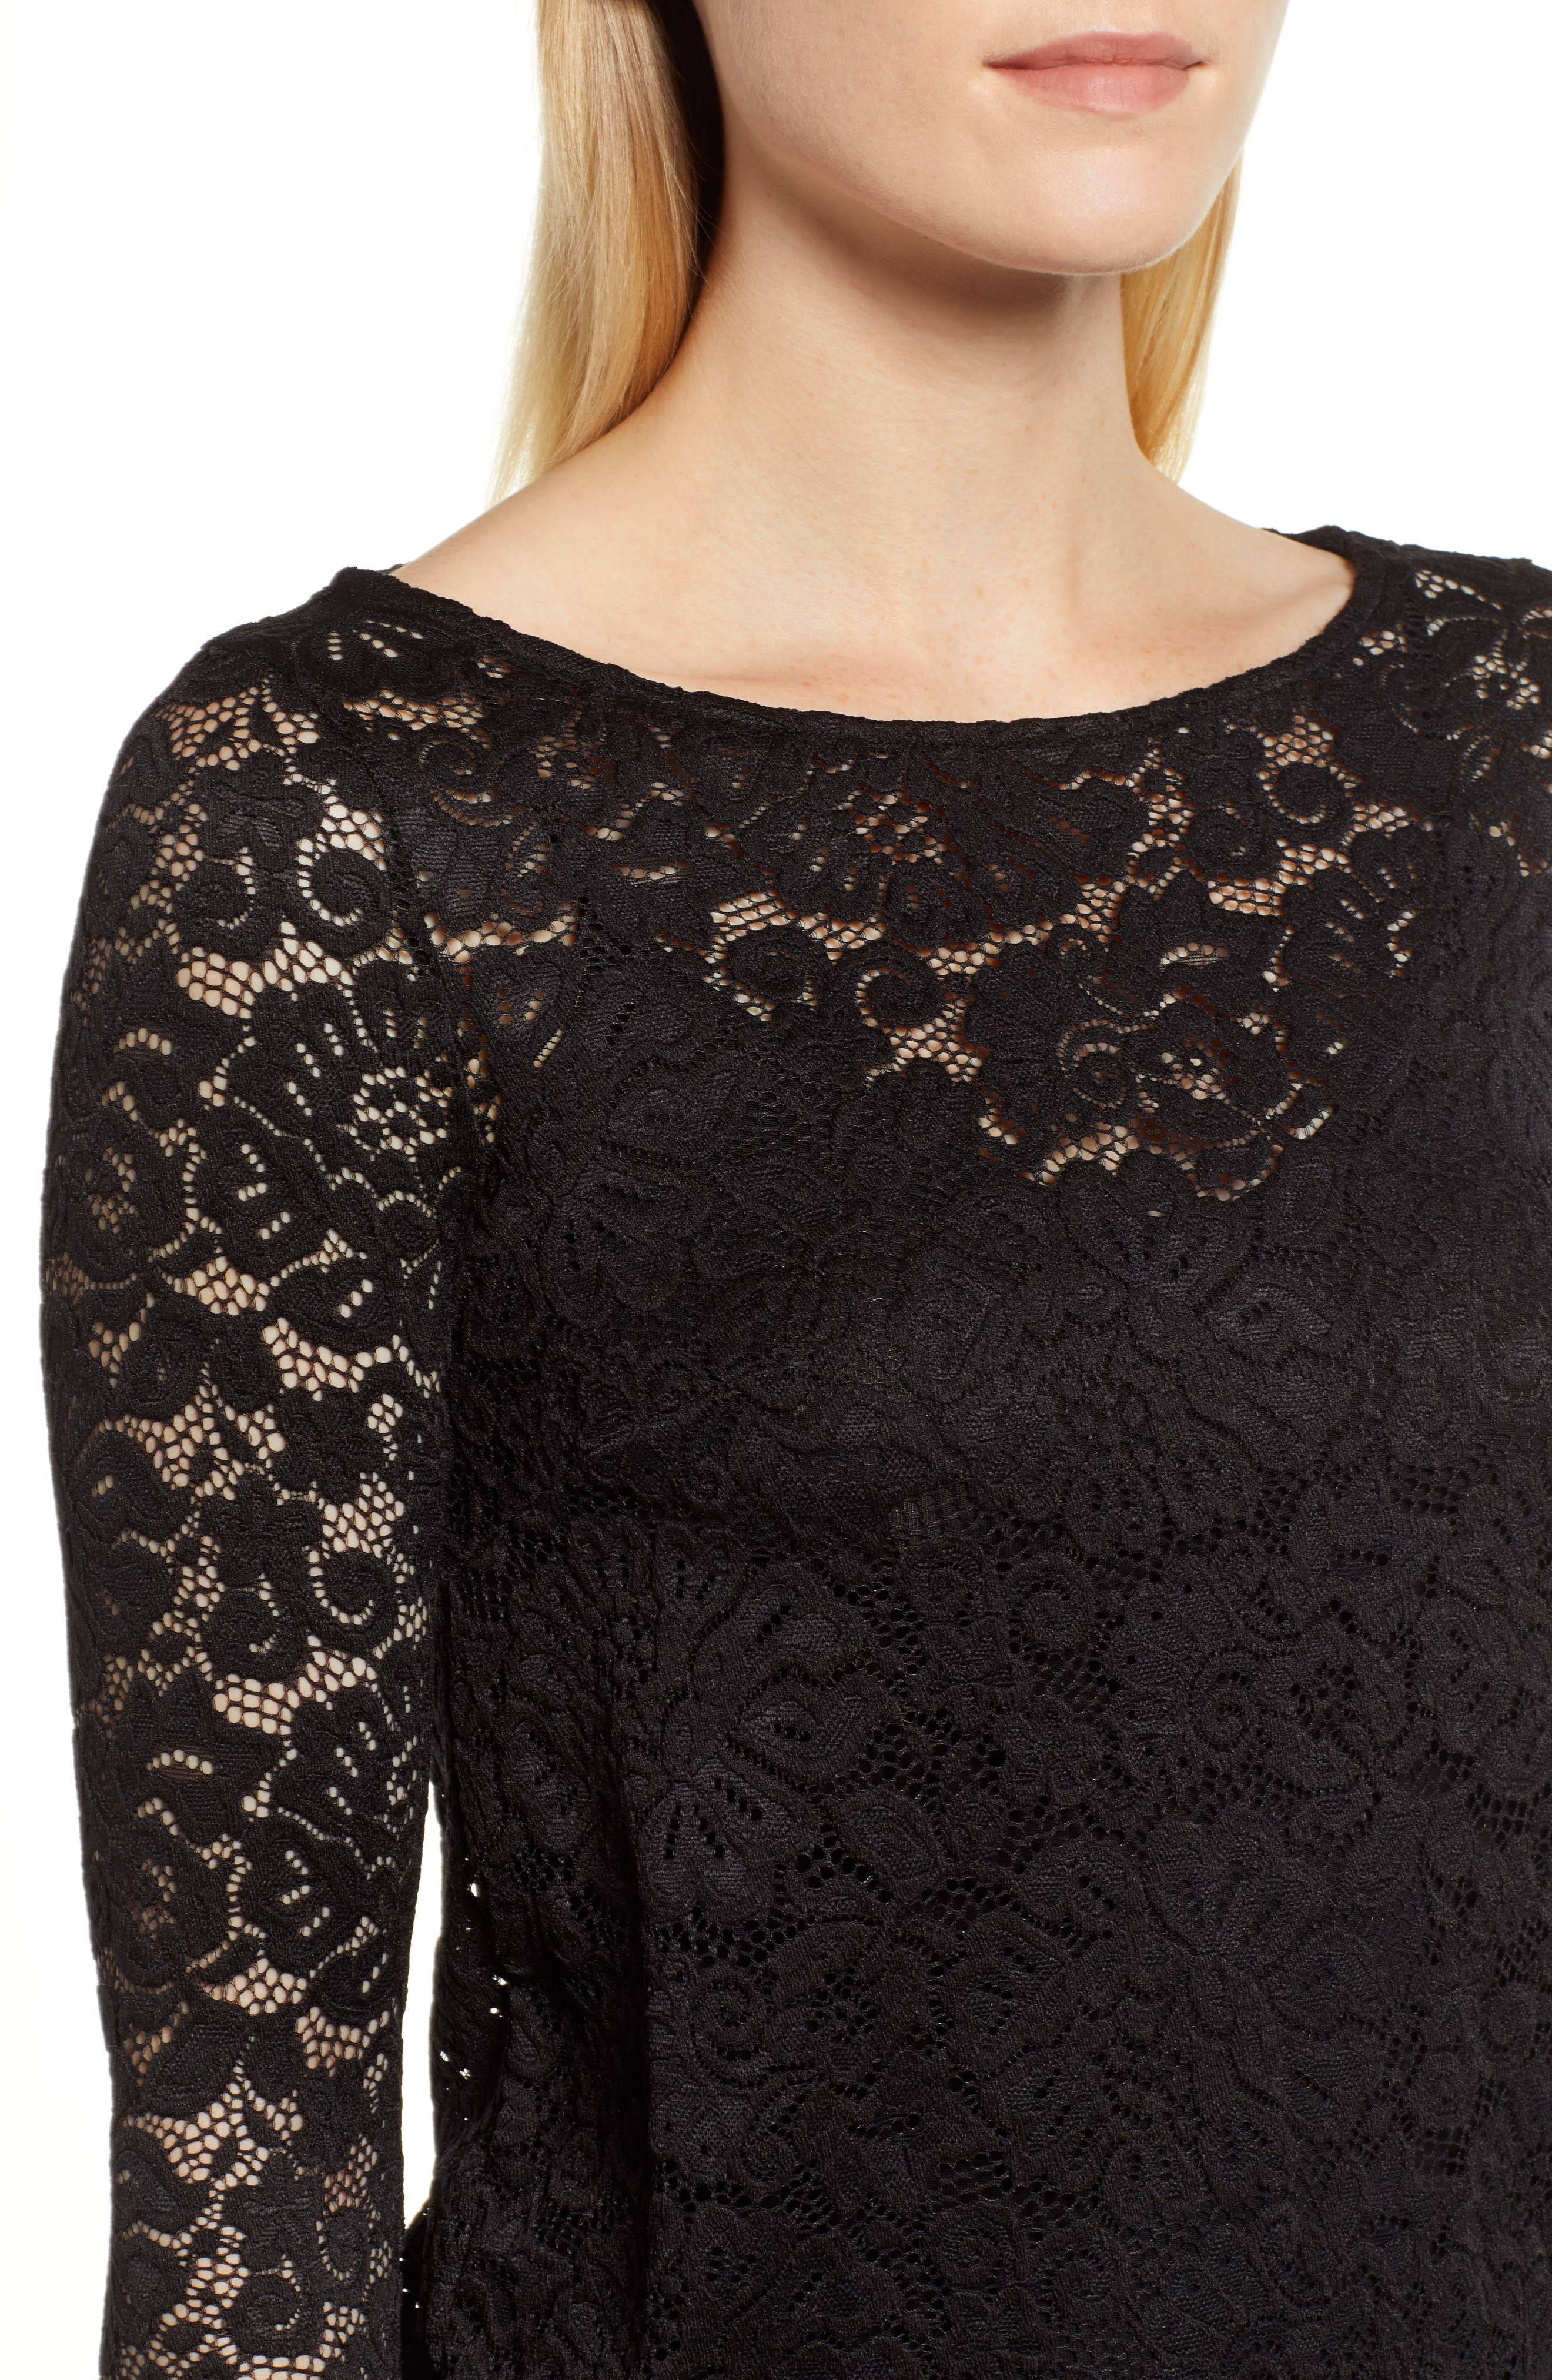 ROSEMUNDE, Filipa Lace Blouse, Alternate thumbnail 4, color, BLACK